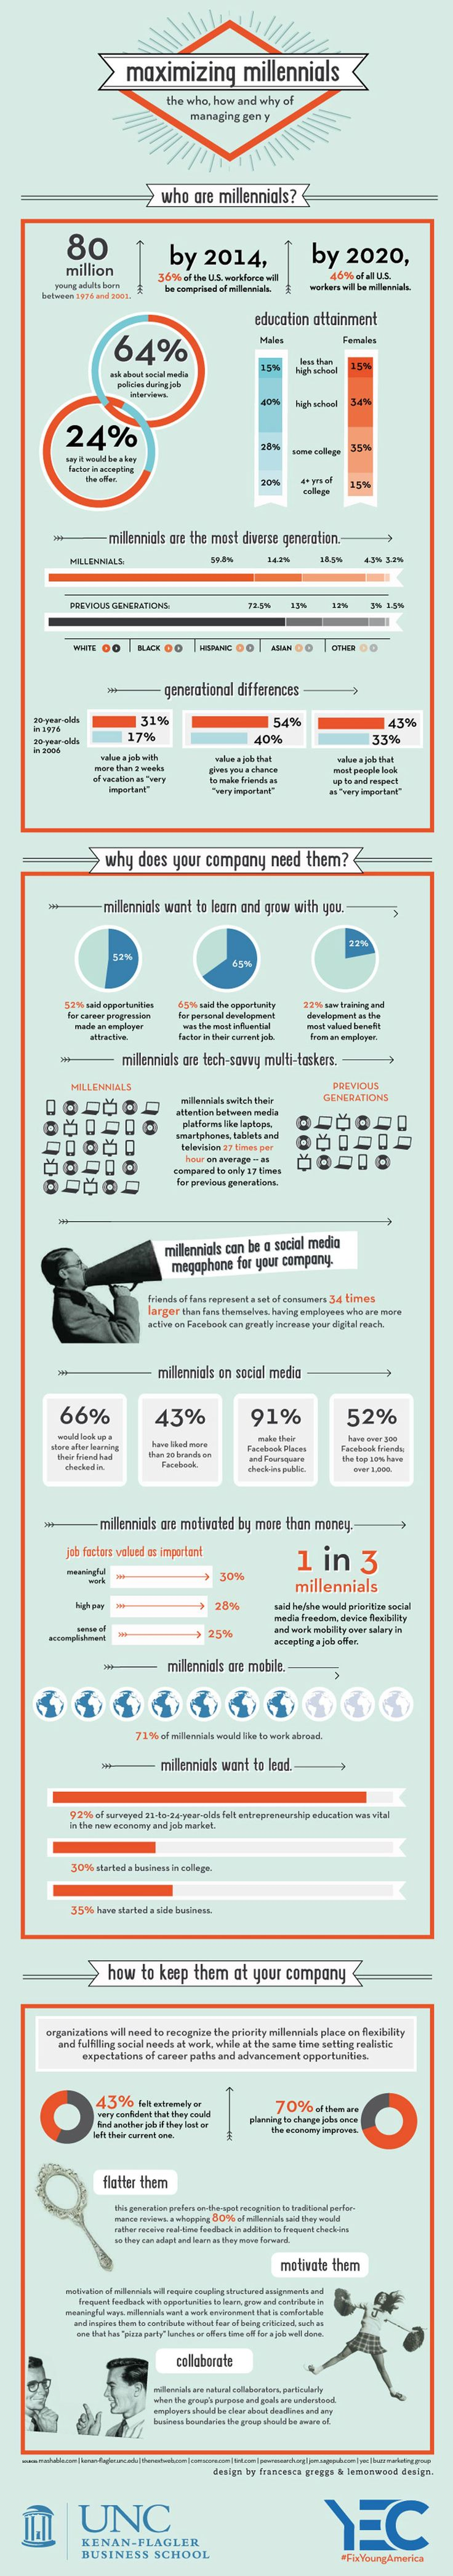 Who are they? What do they want? When do they want it? and WHY? Great Infographic on maximizing the age group that is now called the MILLENNIALS